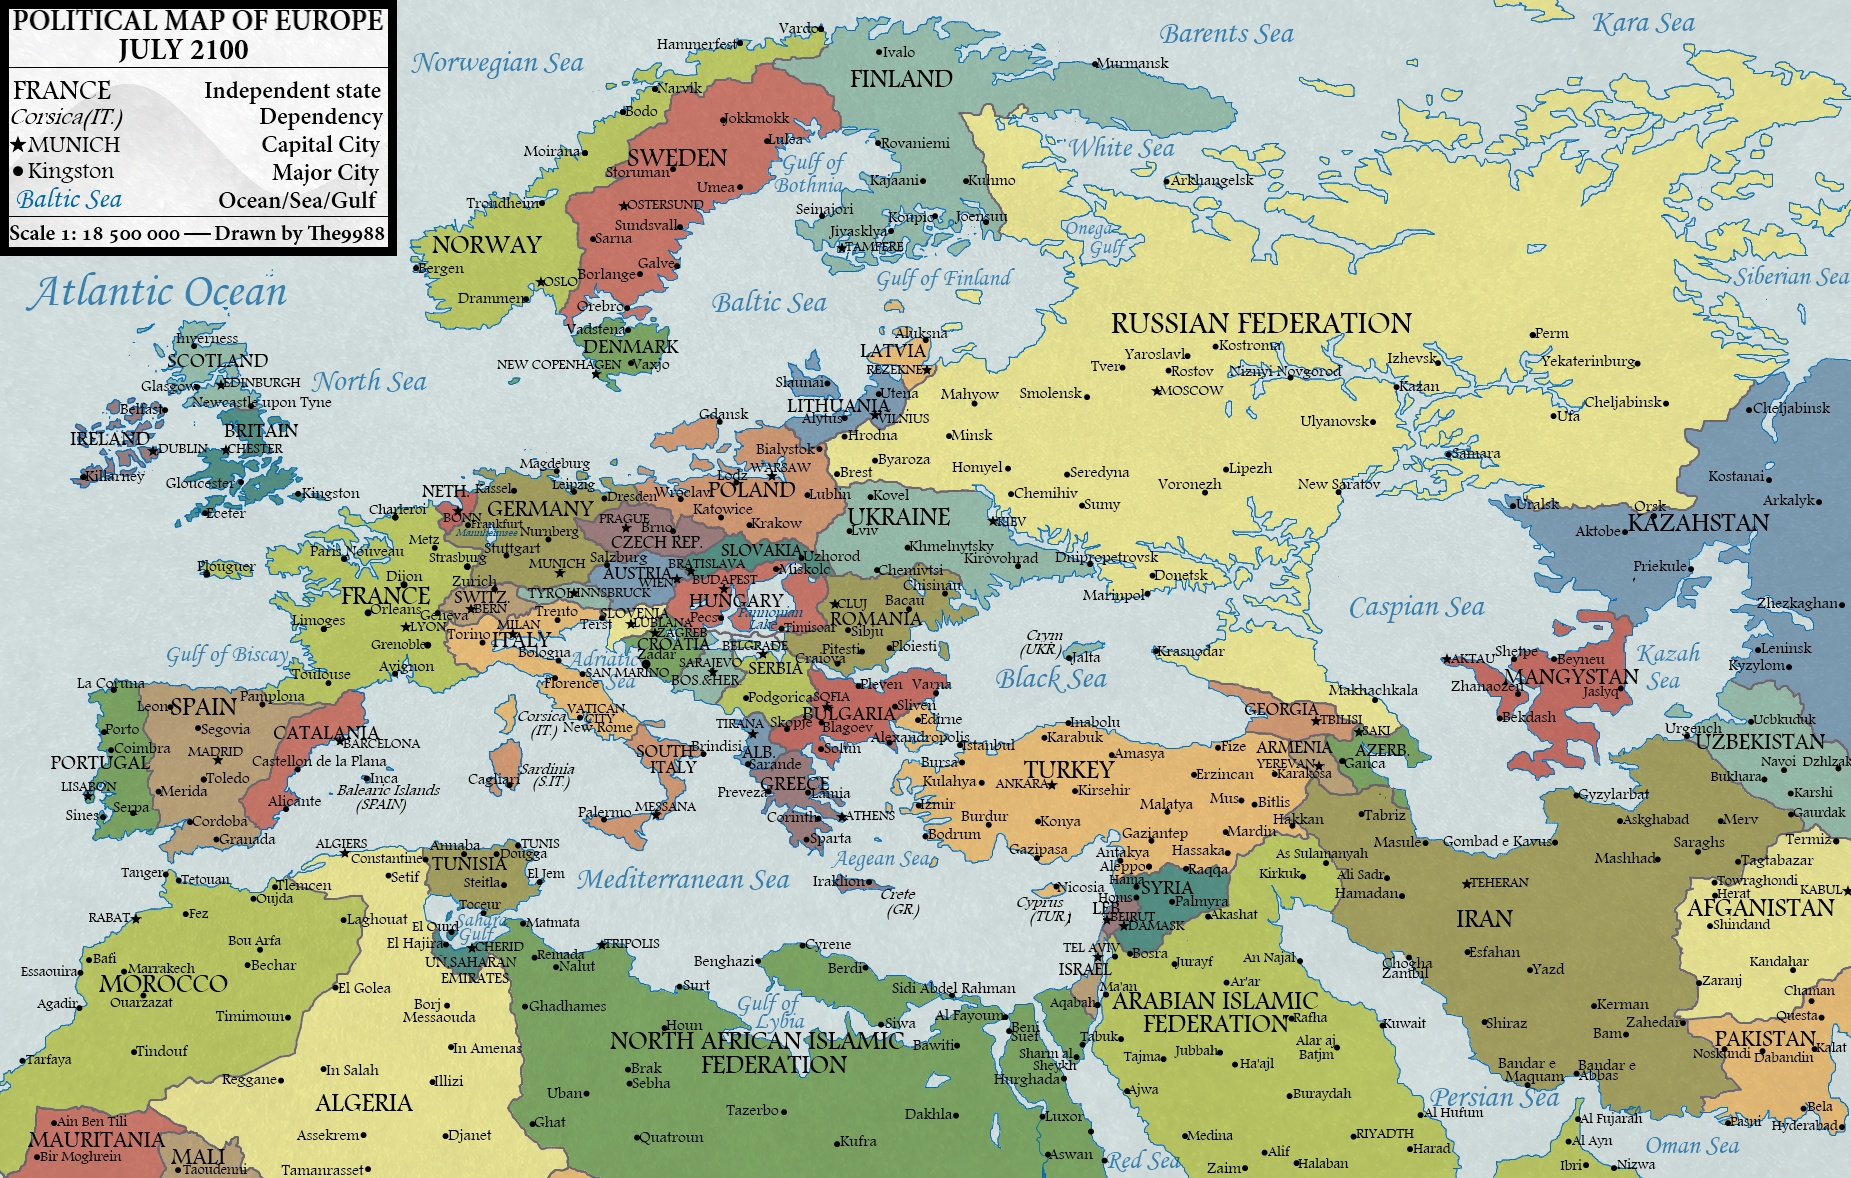 Map of the World in 2100